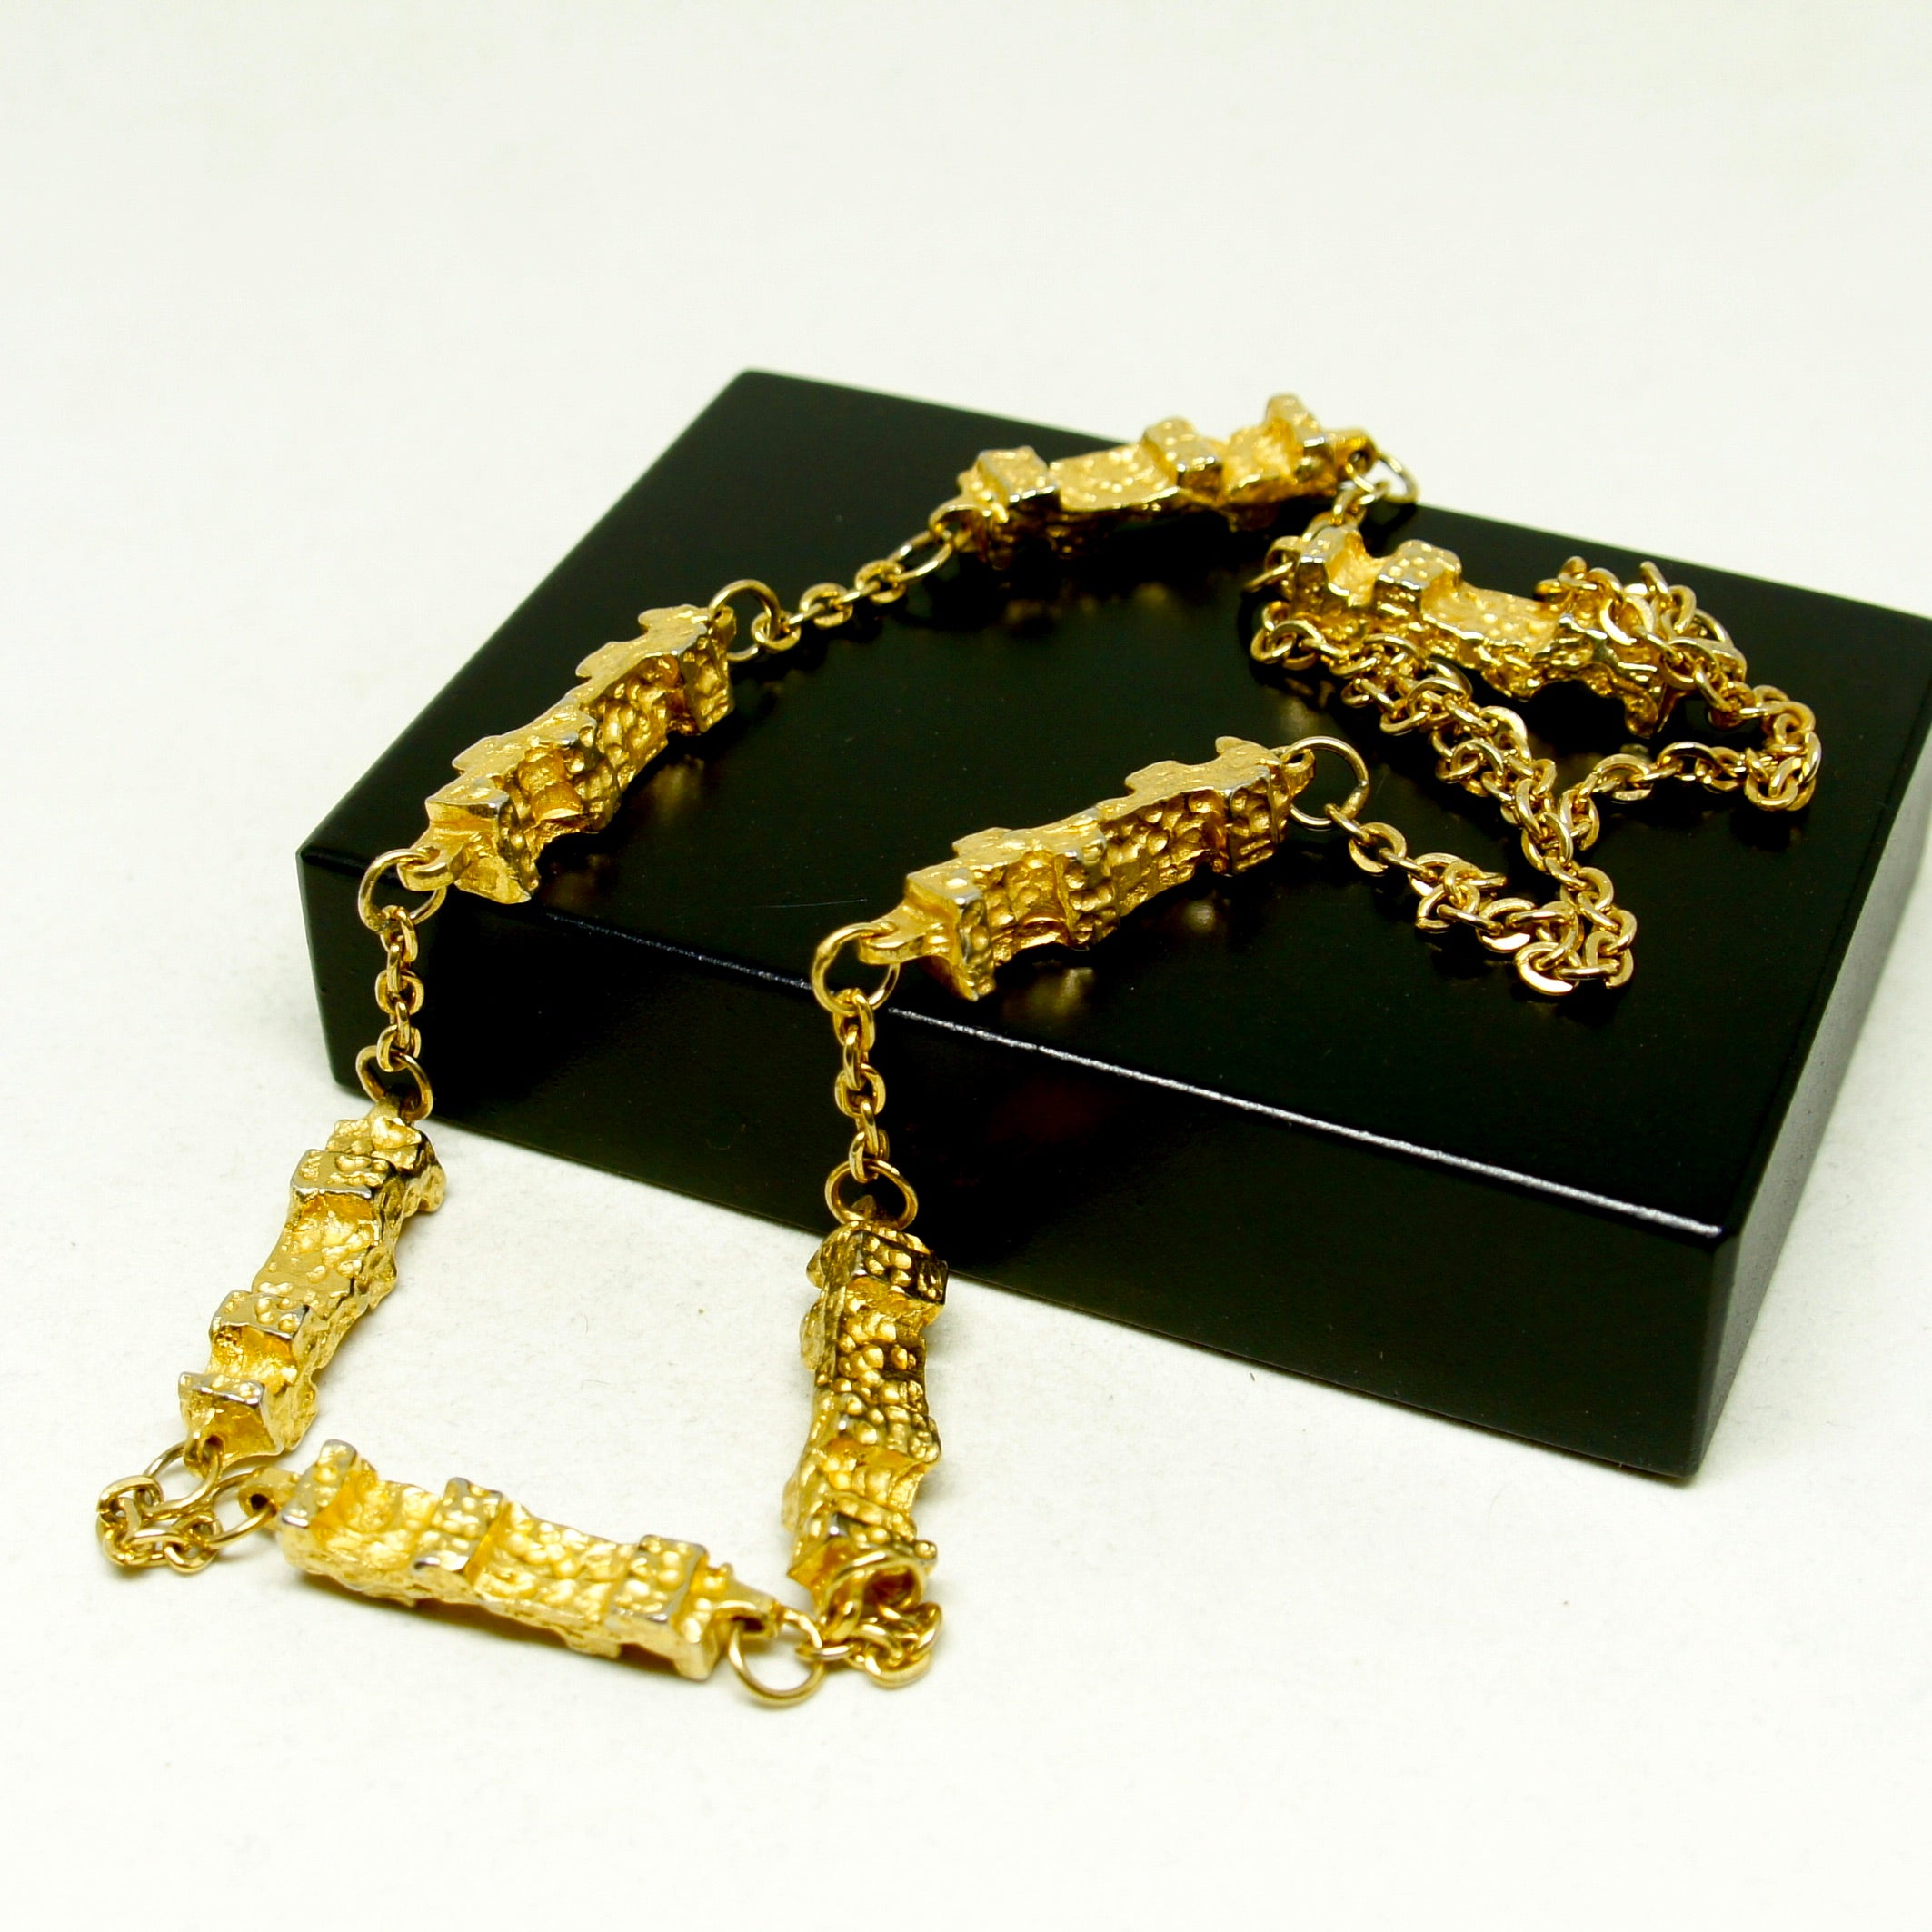 Robert Larin Chain Necklace - Golden Brutalist Pillars